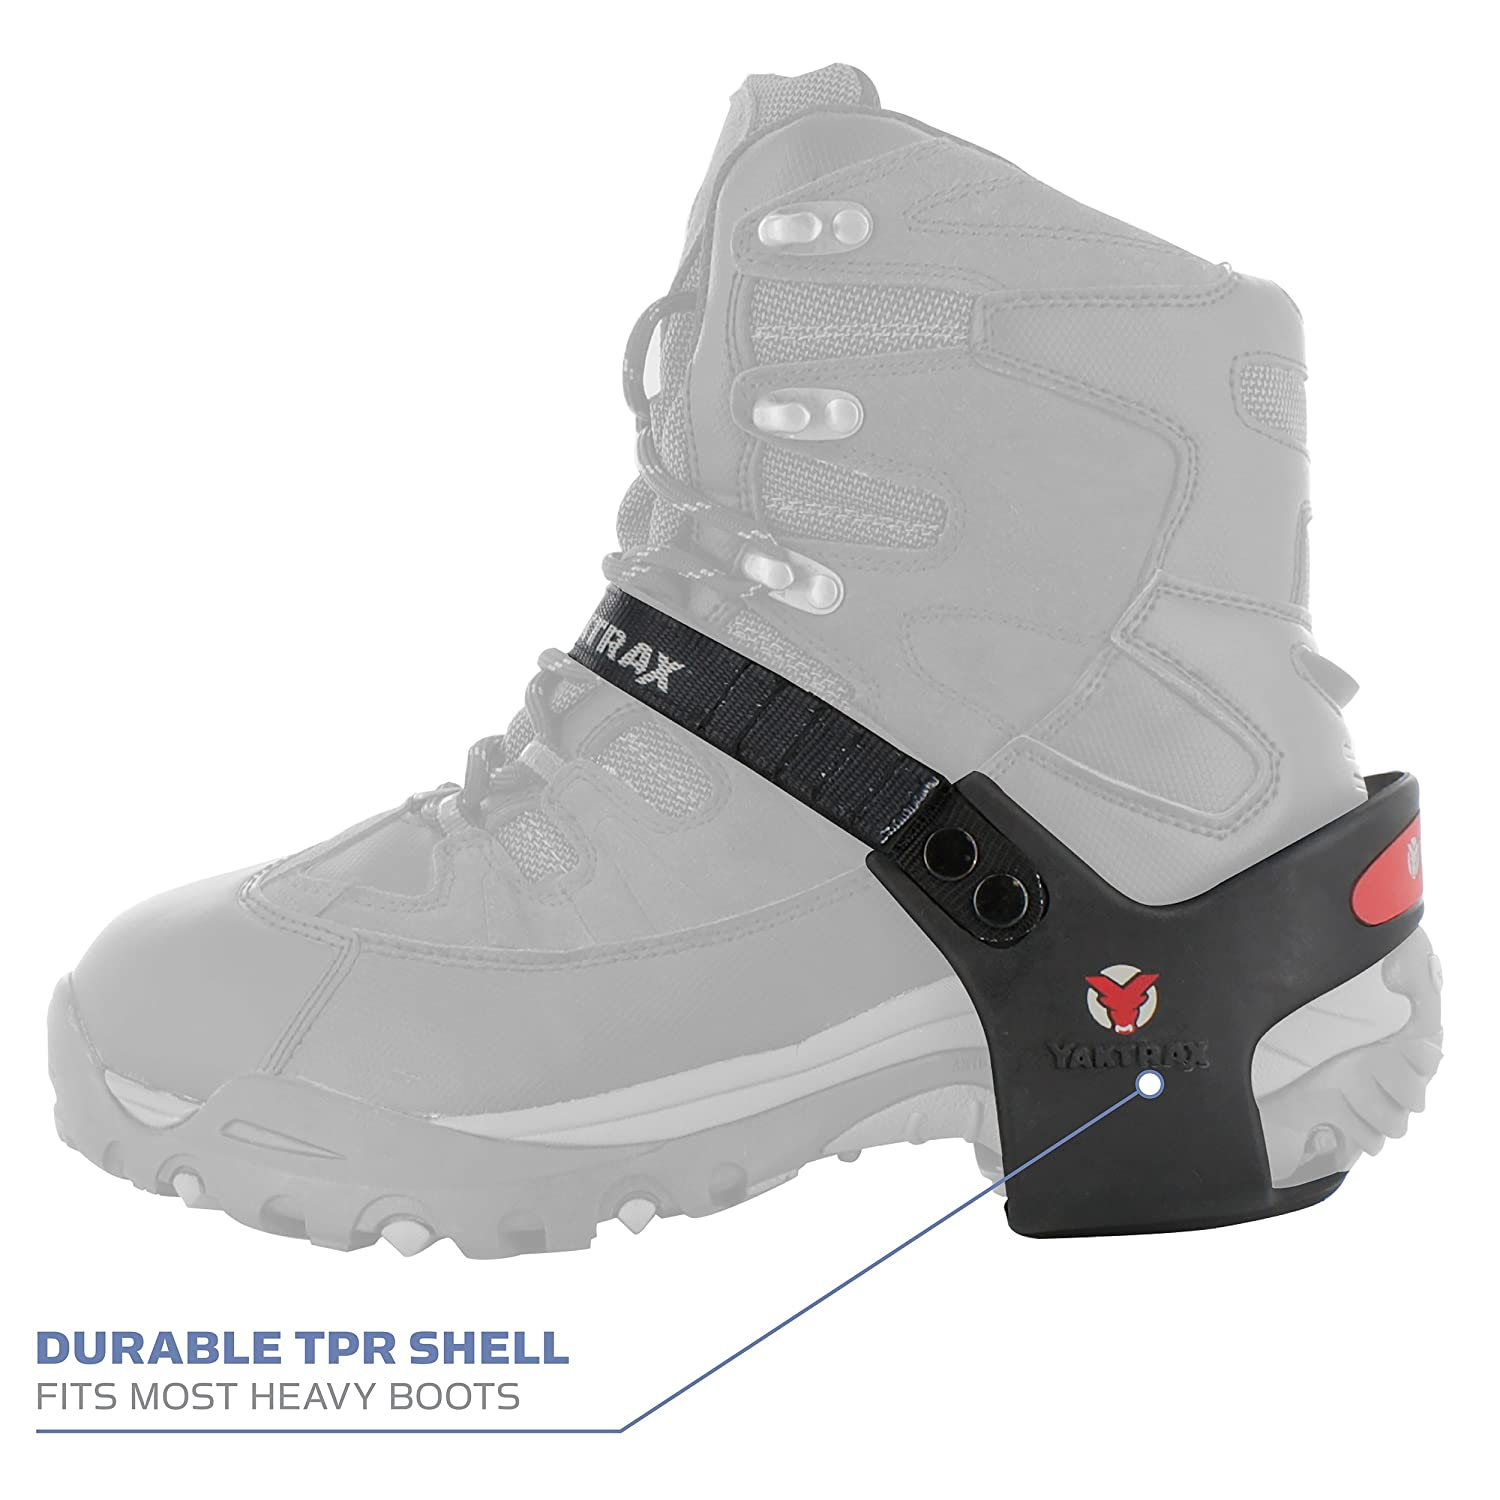 1 Pair Yaktrax Heeltrax Heel-Only Traction Cleats for Walking on Ice and Snow